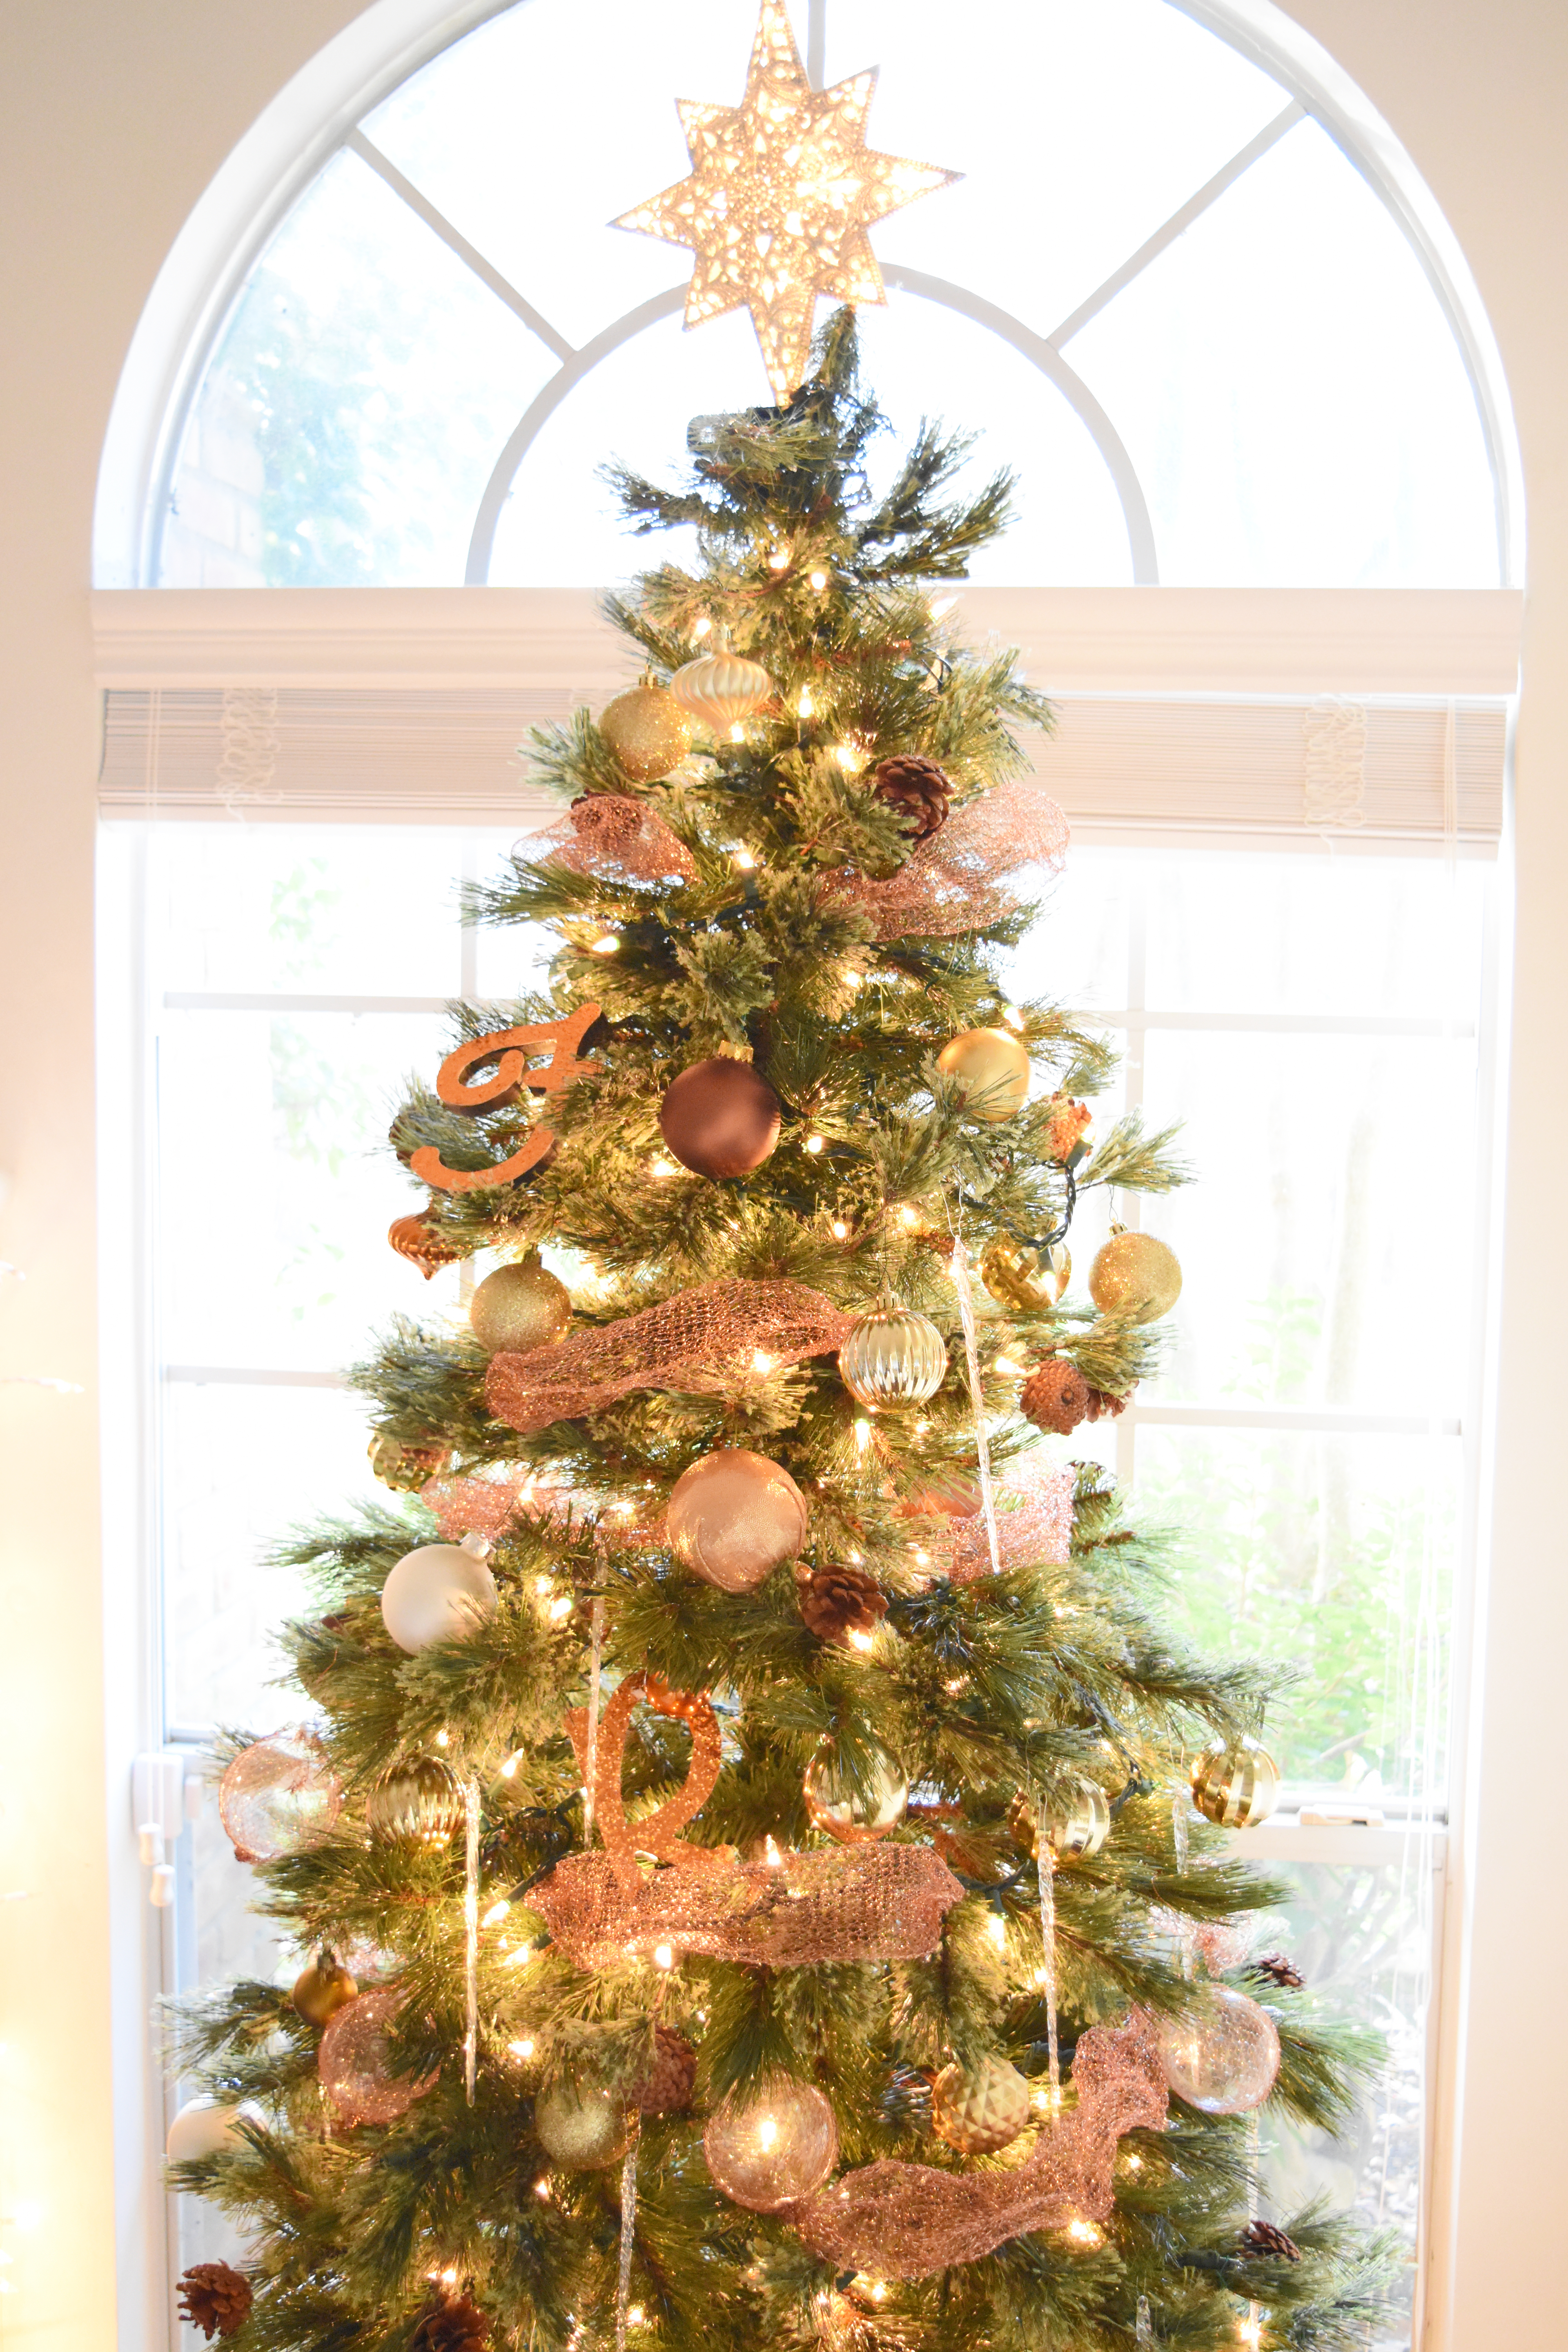 Diy Copper Mesh Garland For Your Christmas Tree Once Again My Dear Irene